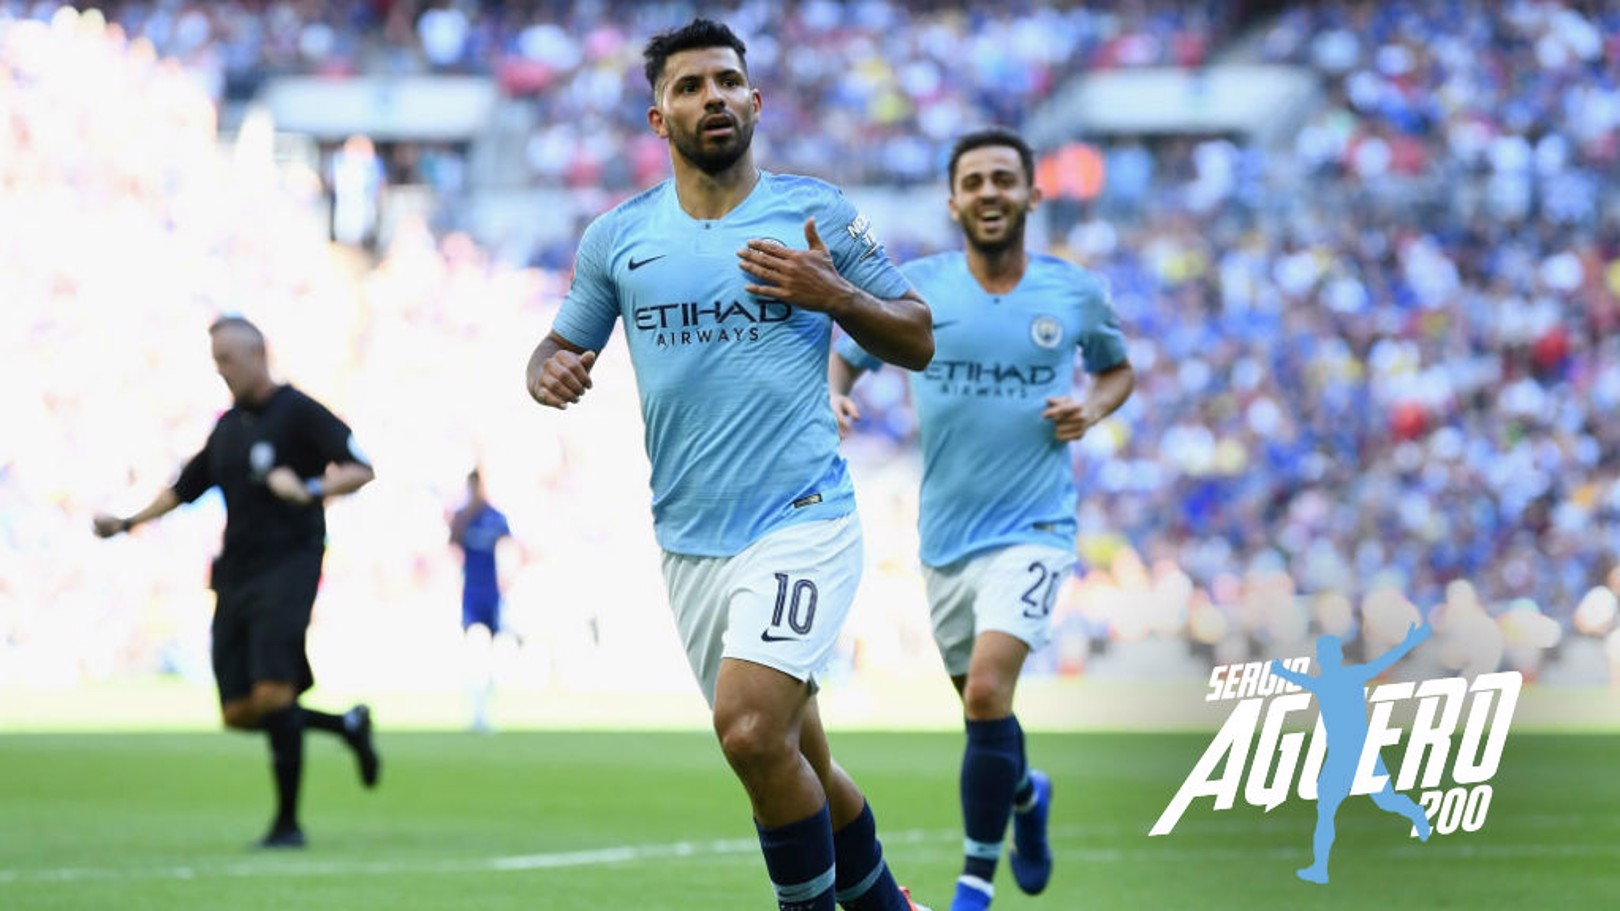 LANDMARK: Sergio Aguero celebrates after scoring his second goal in the 2-0 Community Shield win over Chelsea